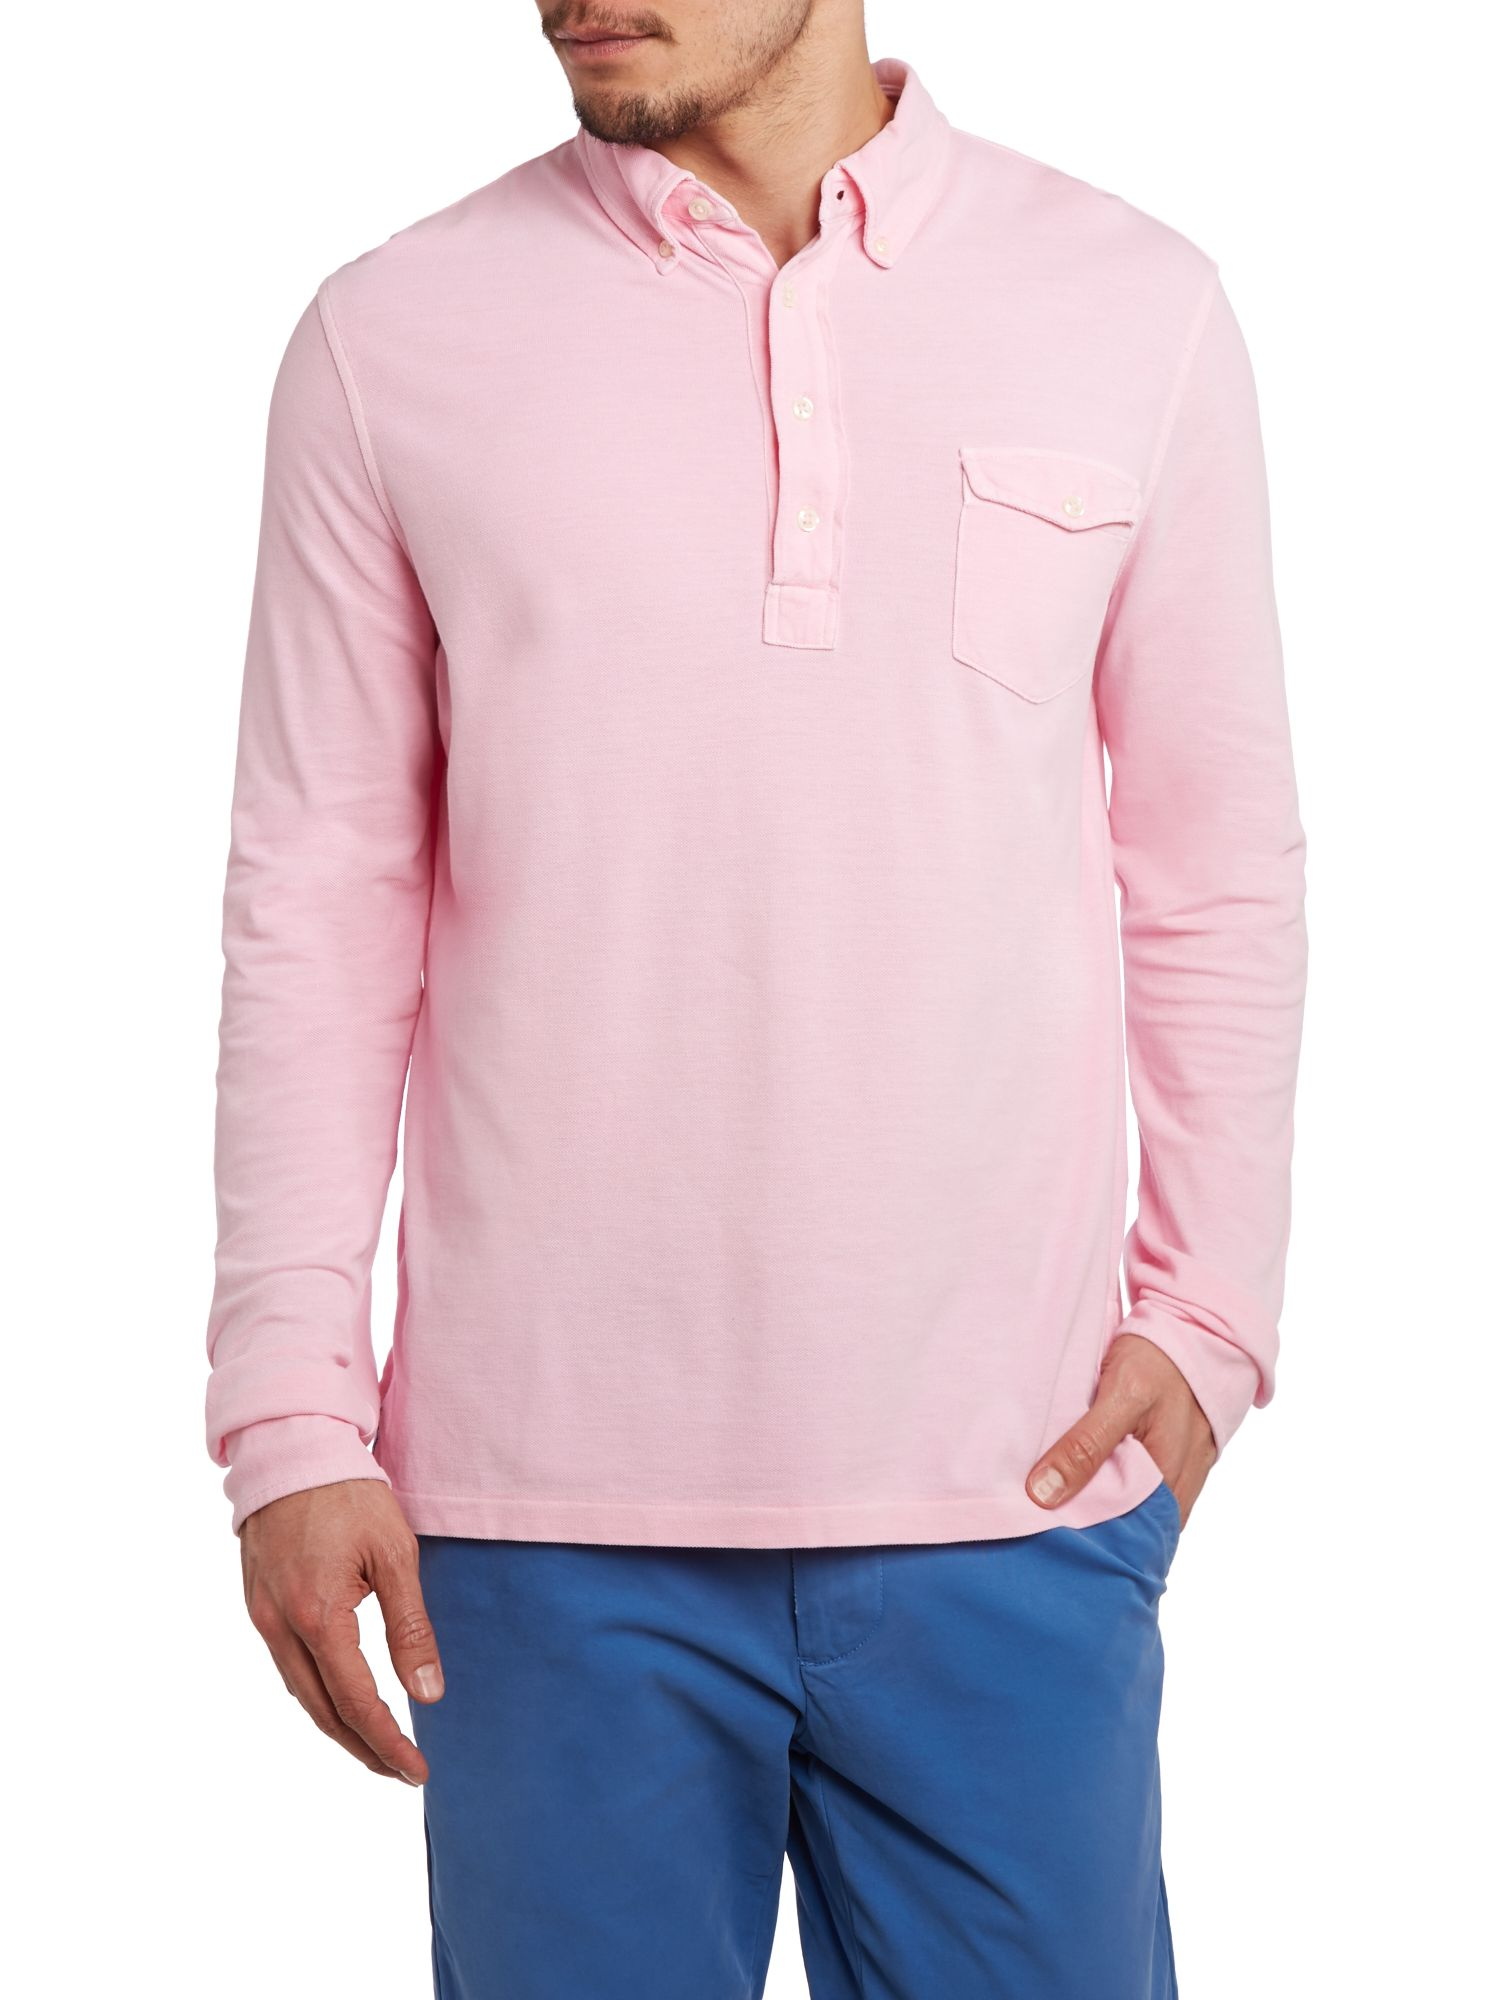 Custom fit pocket long sleeve polo shirt